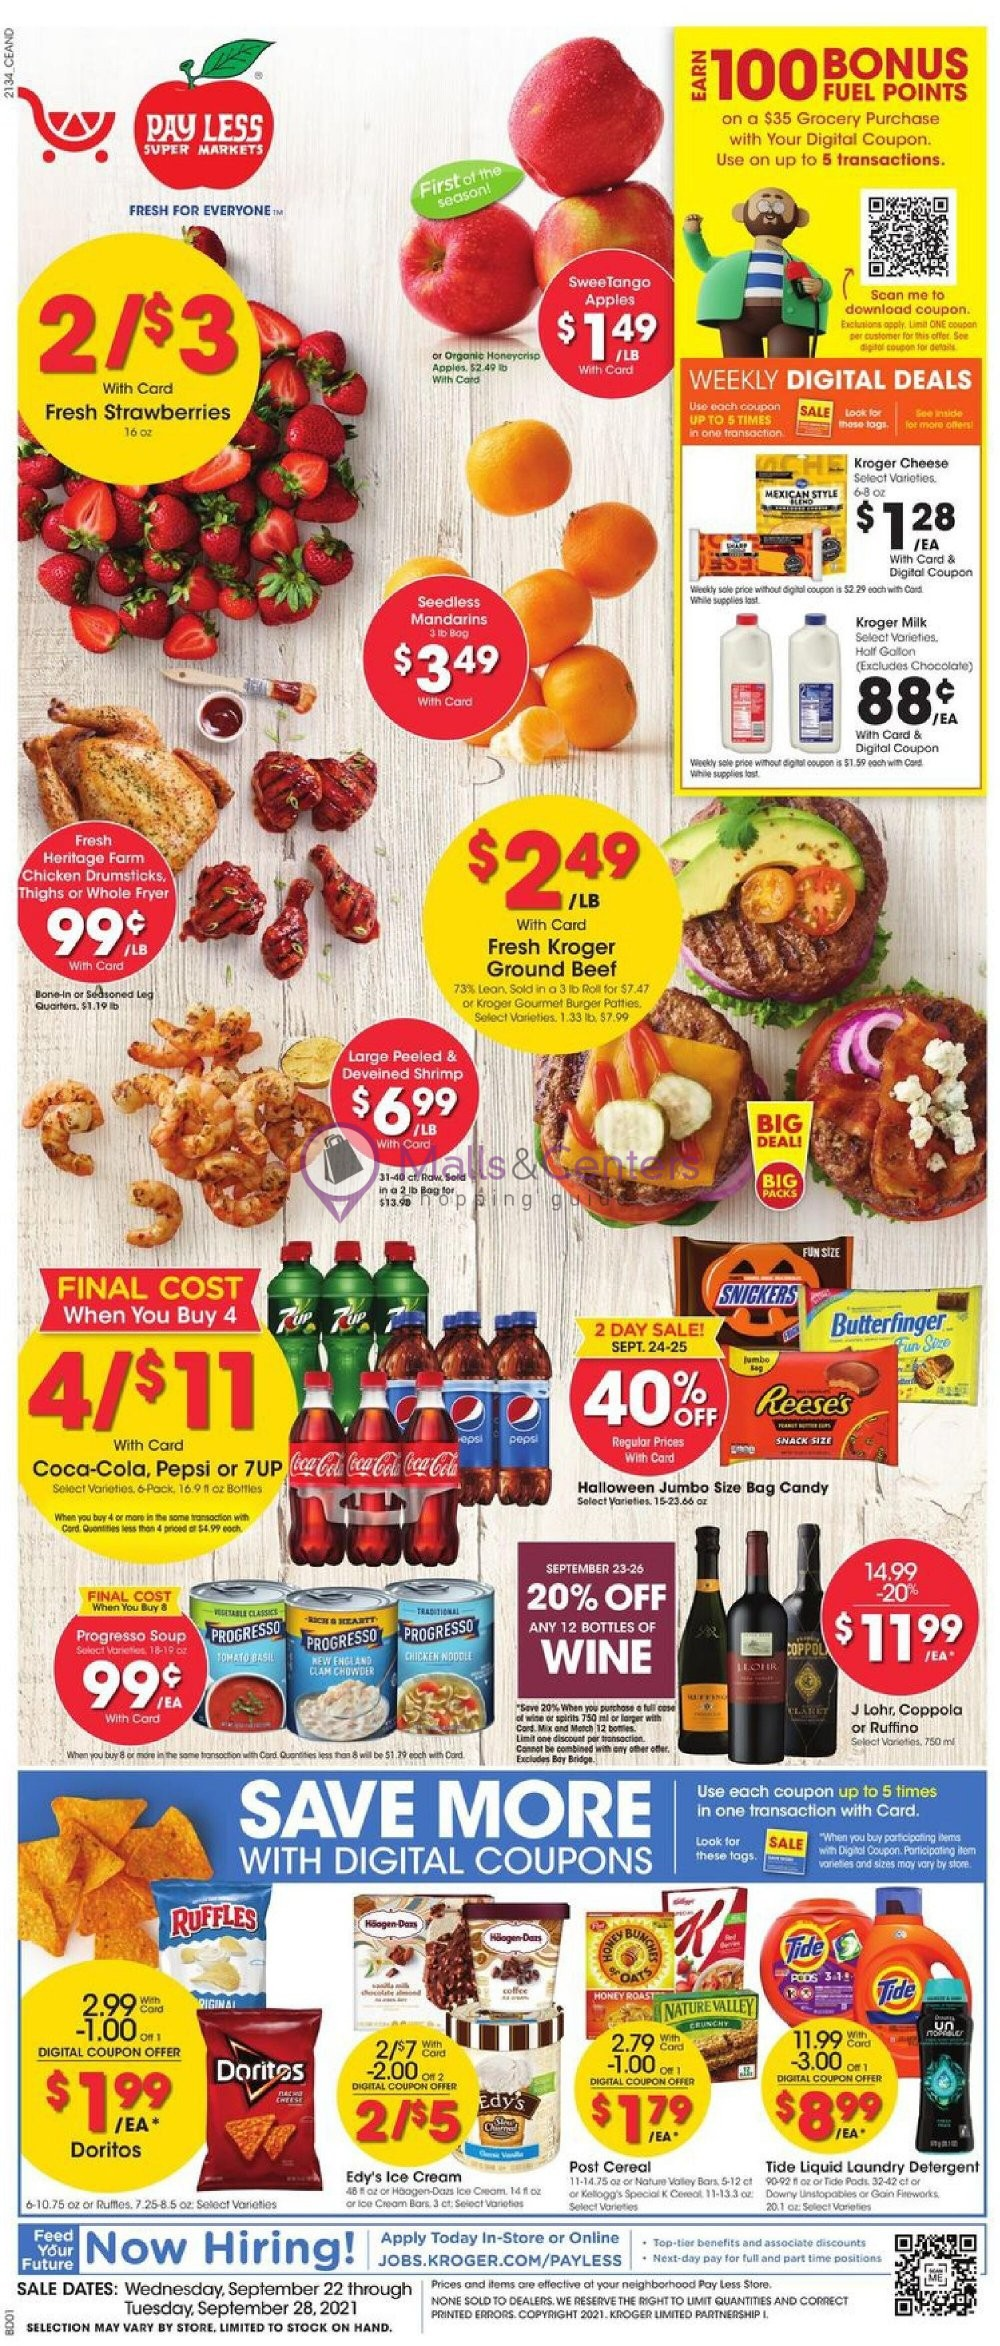 weekly ads Pay Less Super Markets - page 1 - mallscenters.com